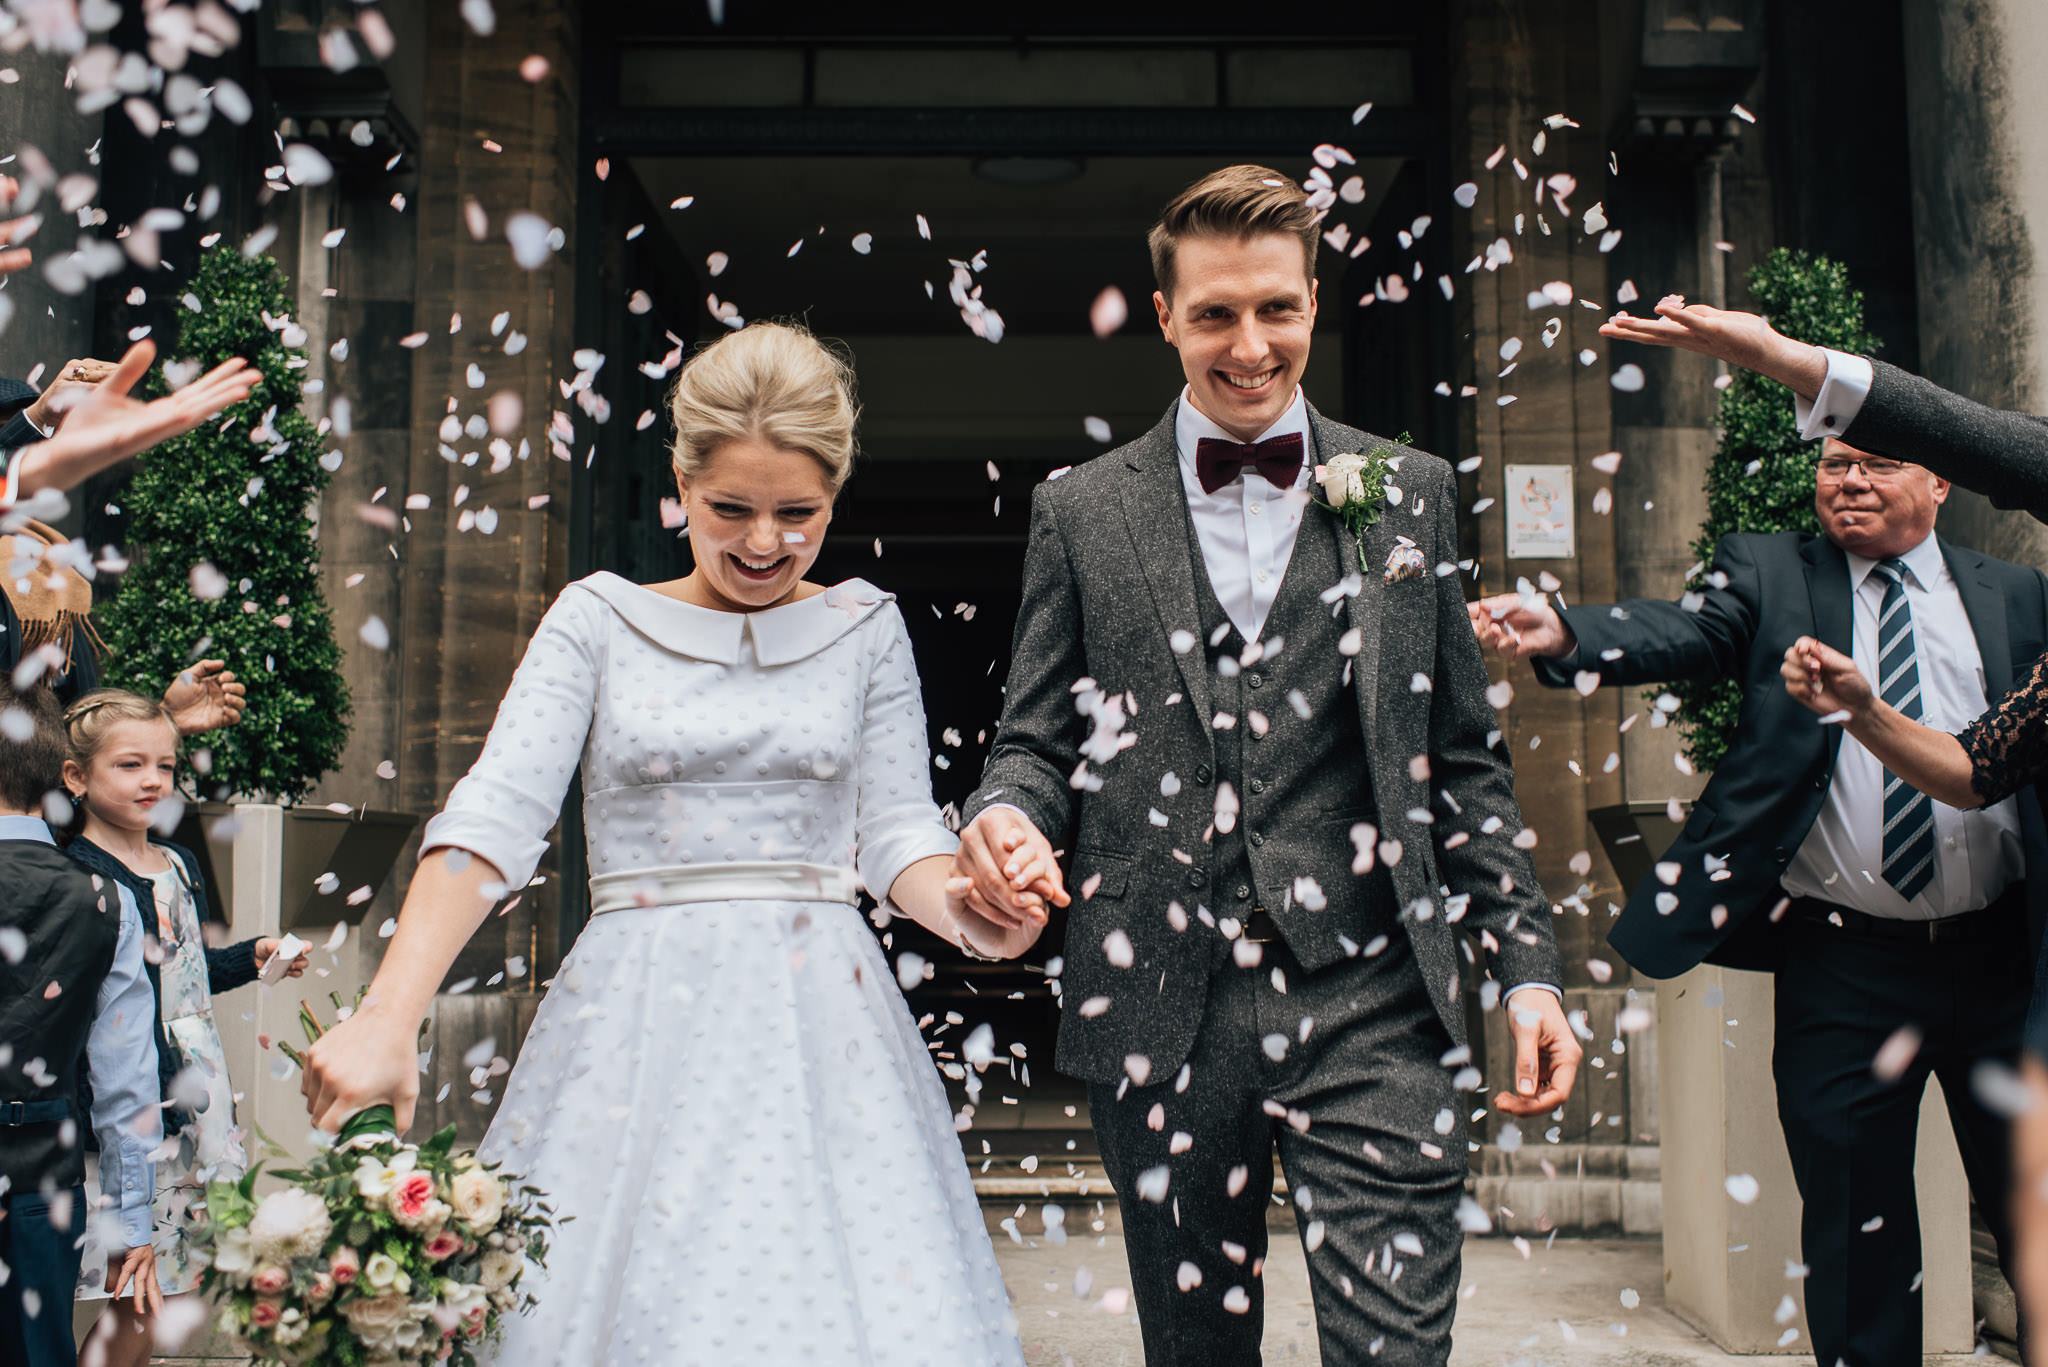 Confetti thrown over couple in stoke newington town hall wedding by creative and alternative london wedding photographer the shannons photography